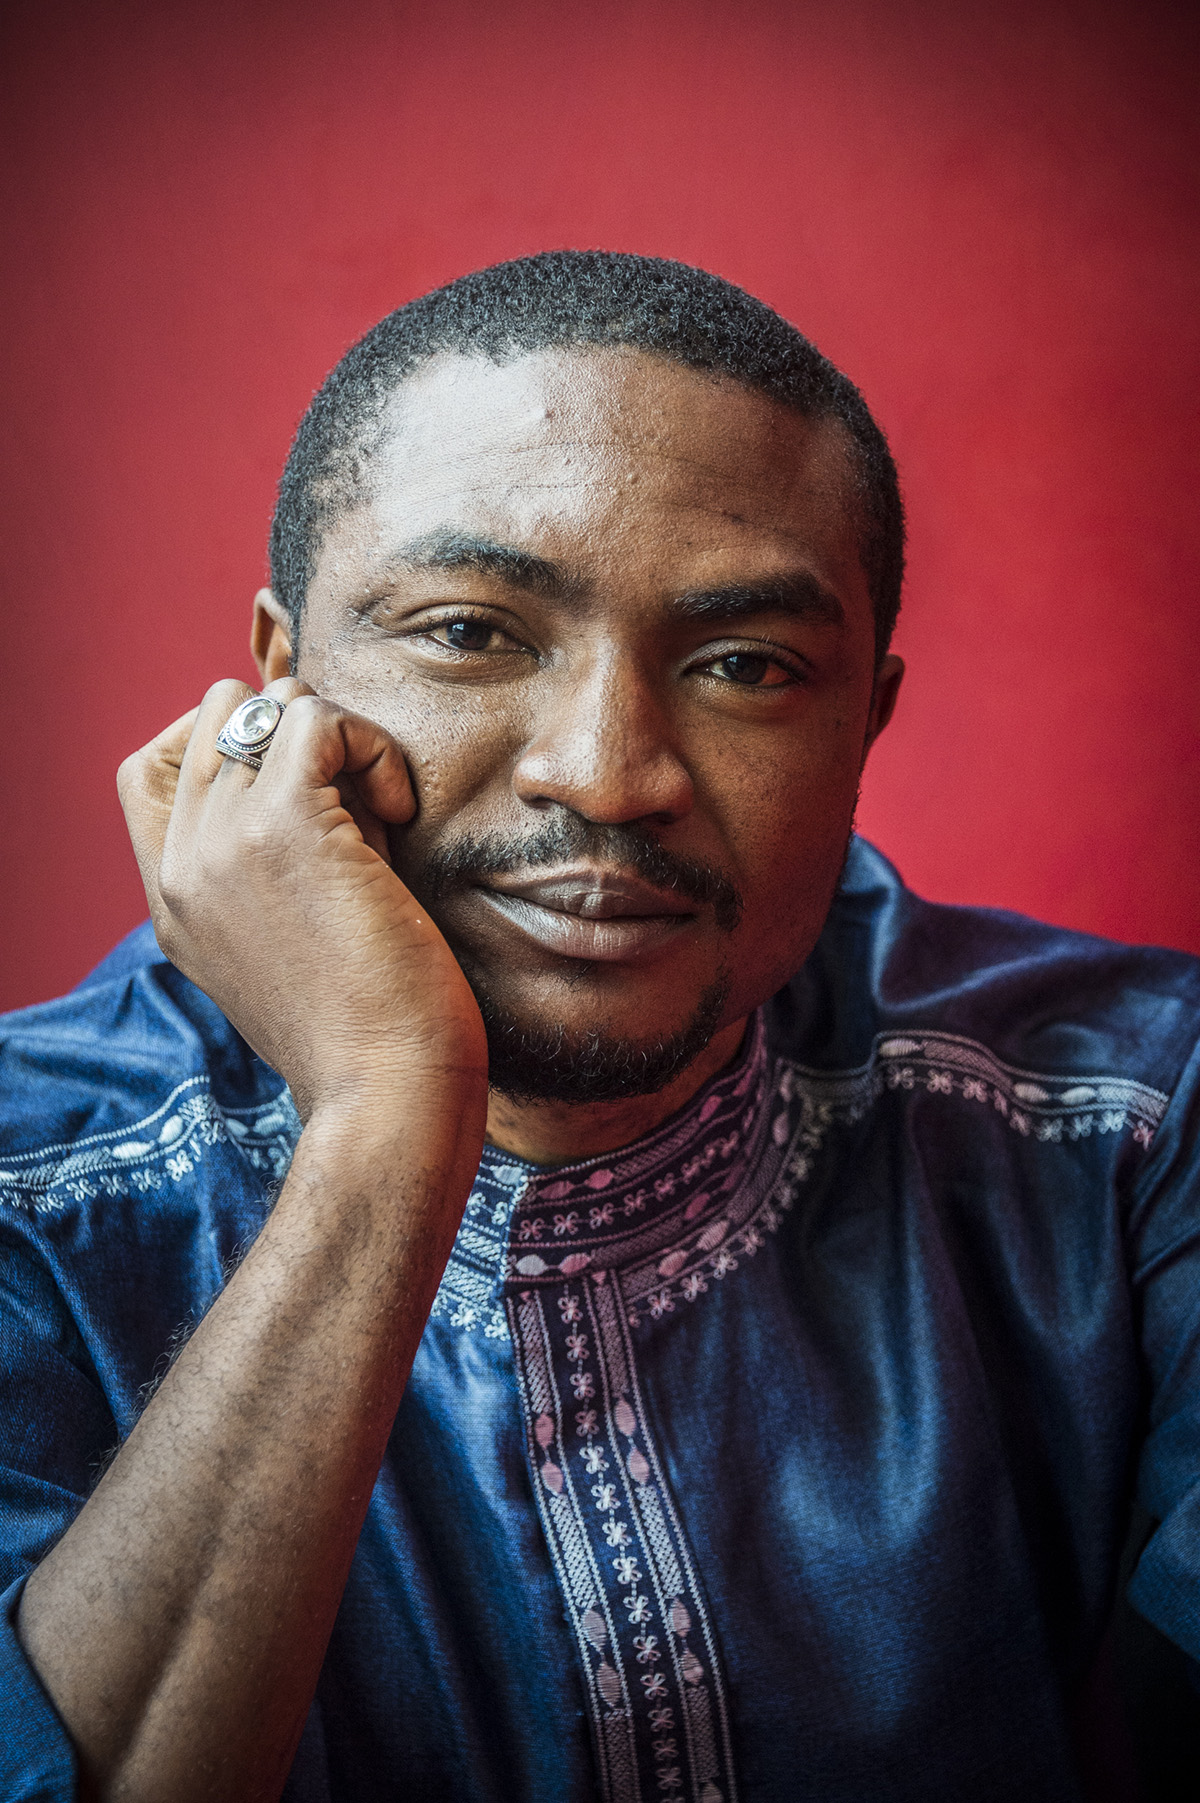 abubakar adam ibrahim photo credit jill jennings